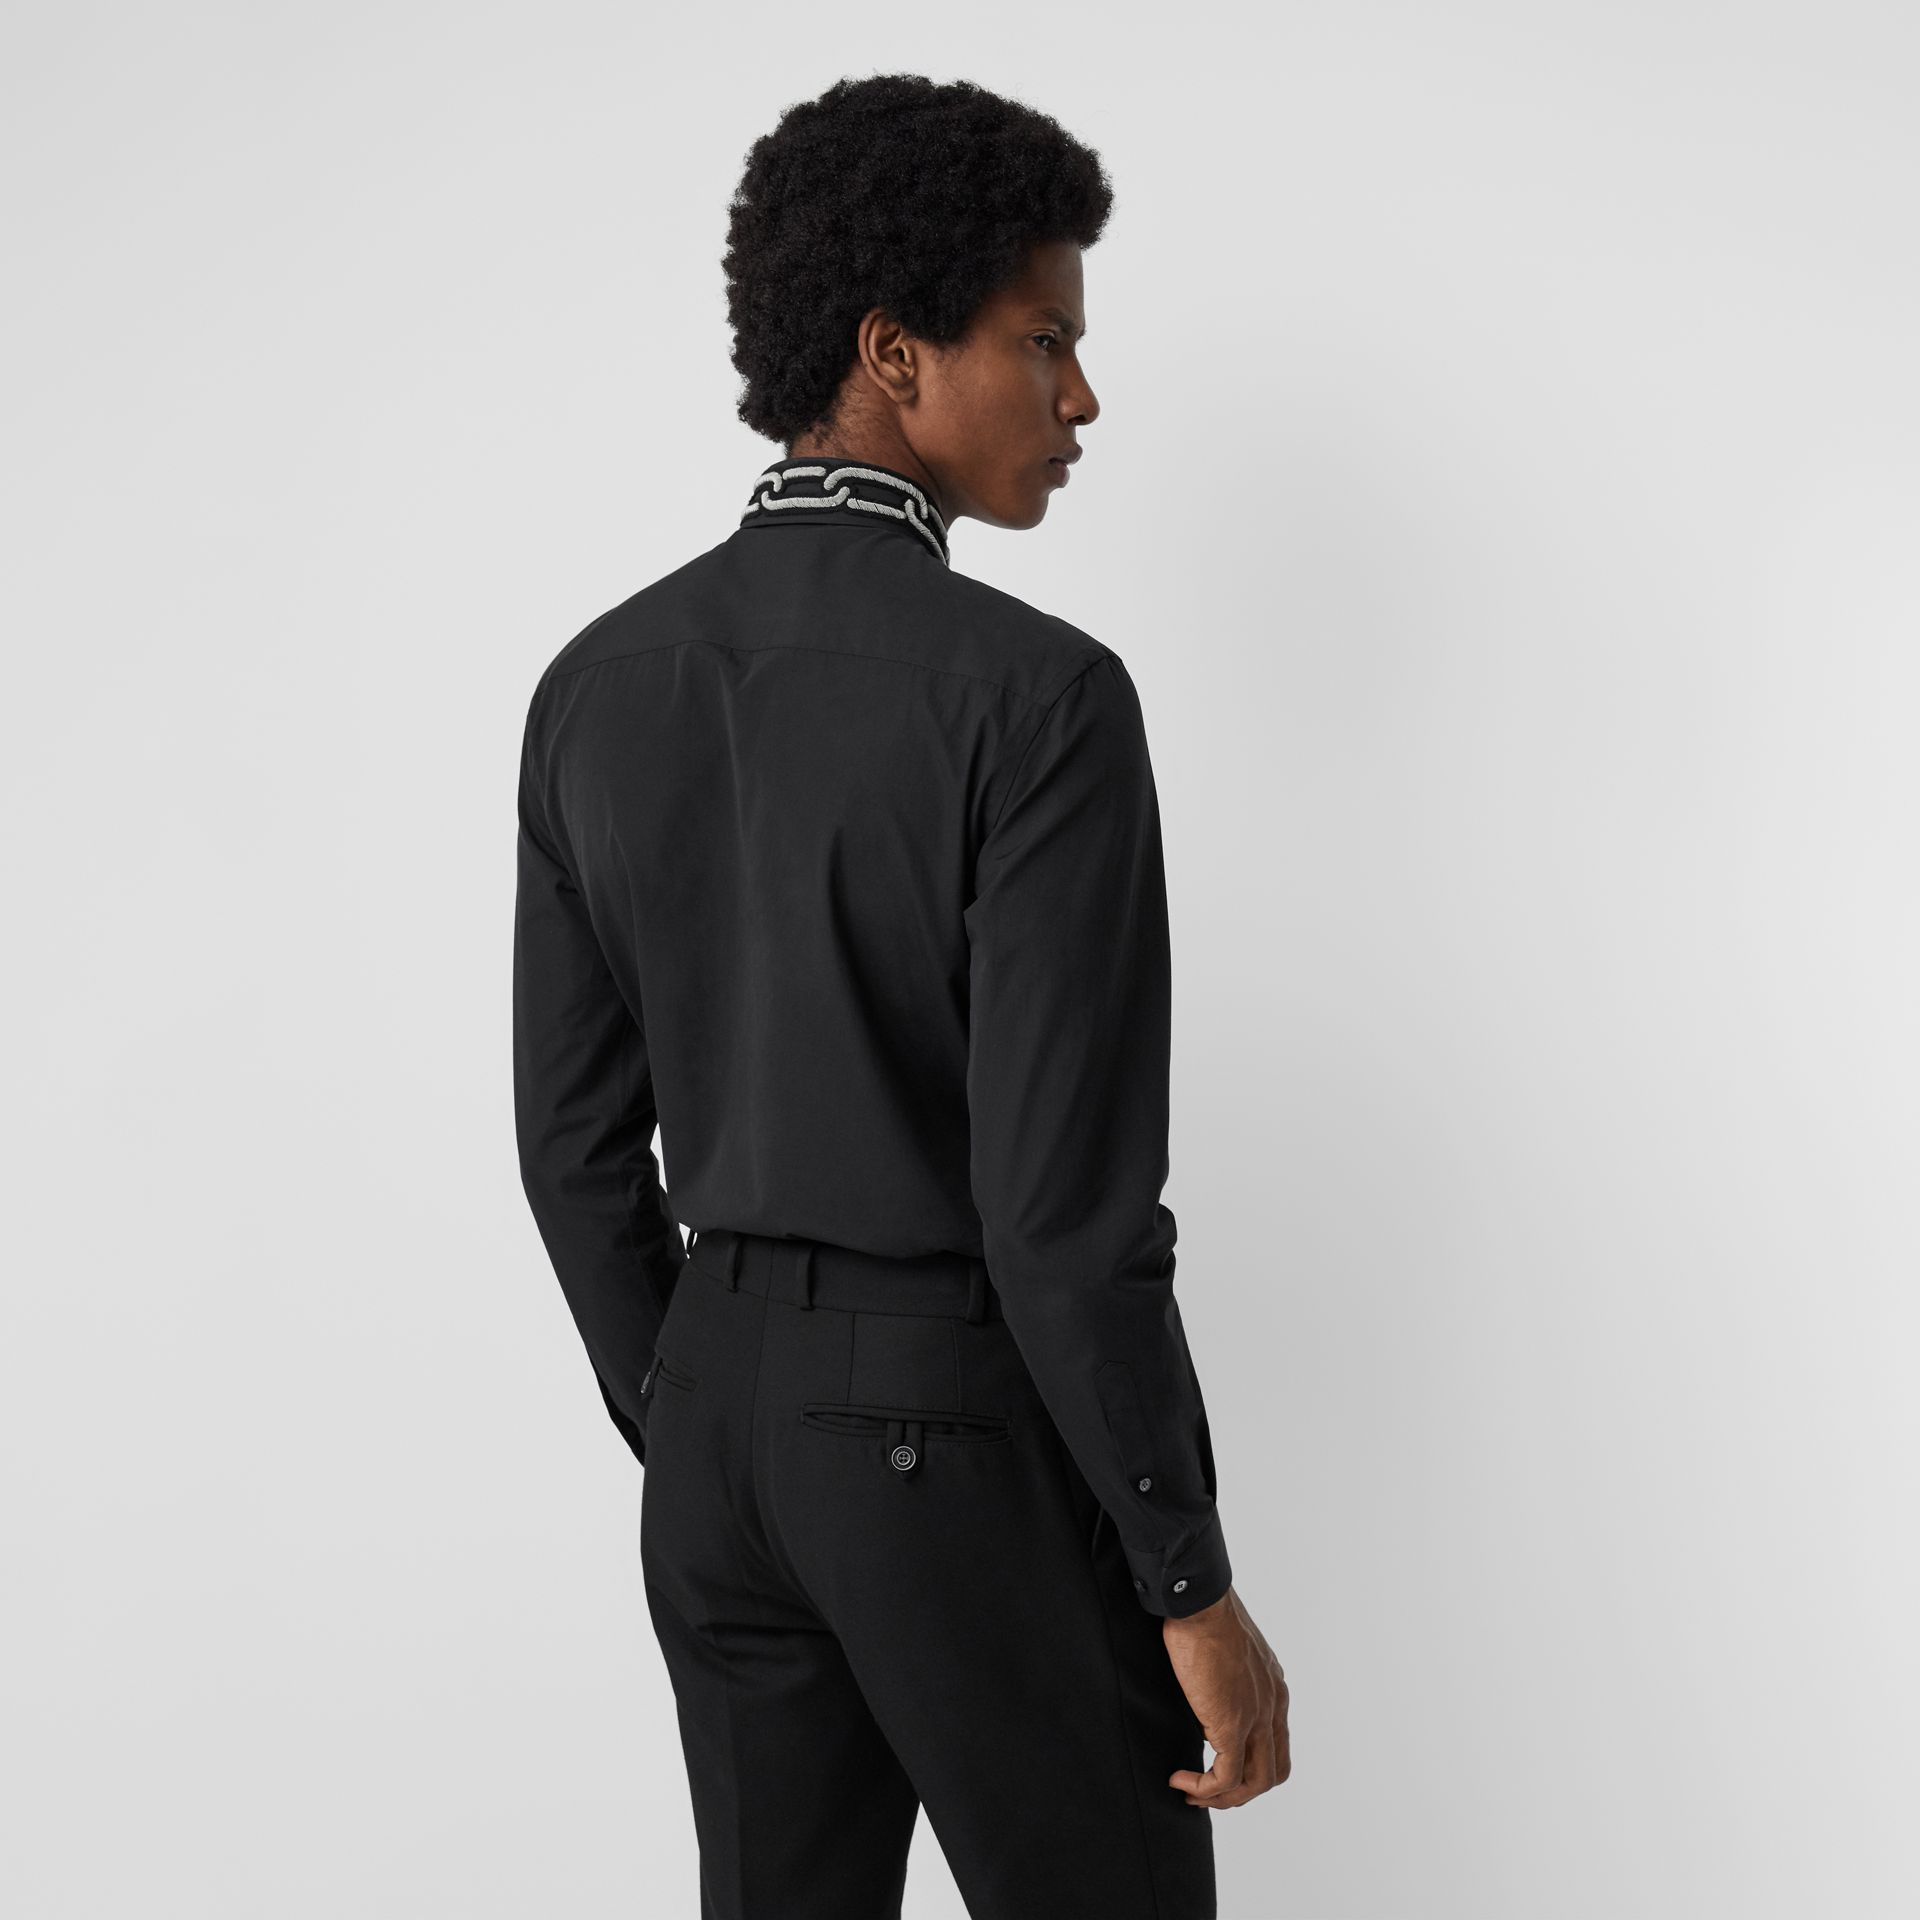 Slim Fit Bullion Link Cotton Poplin Dress Shirt in Black - Men | Burberry - gallery image 2